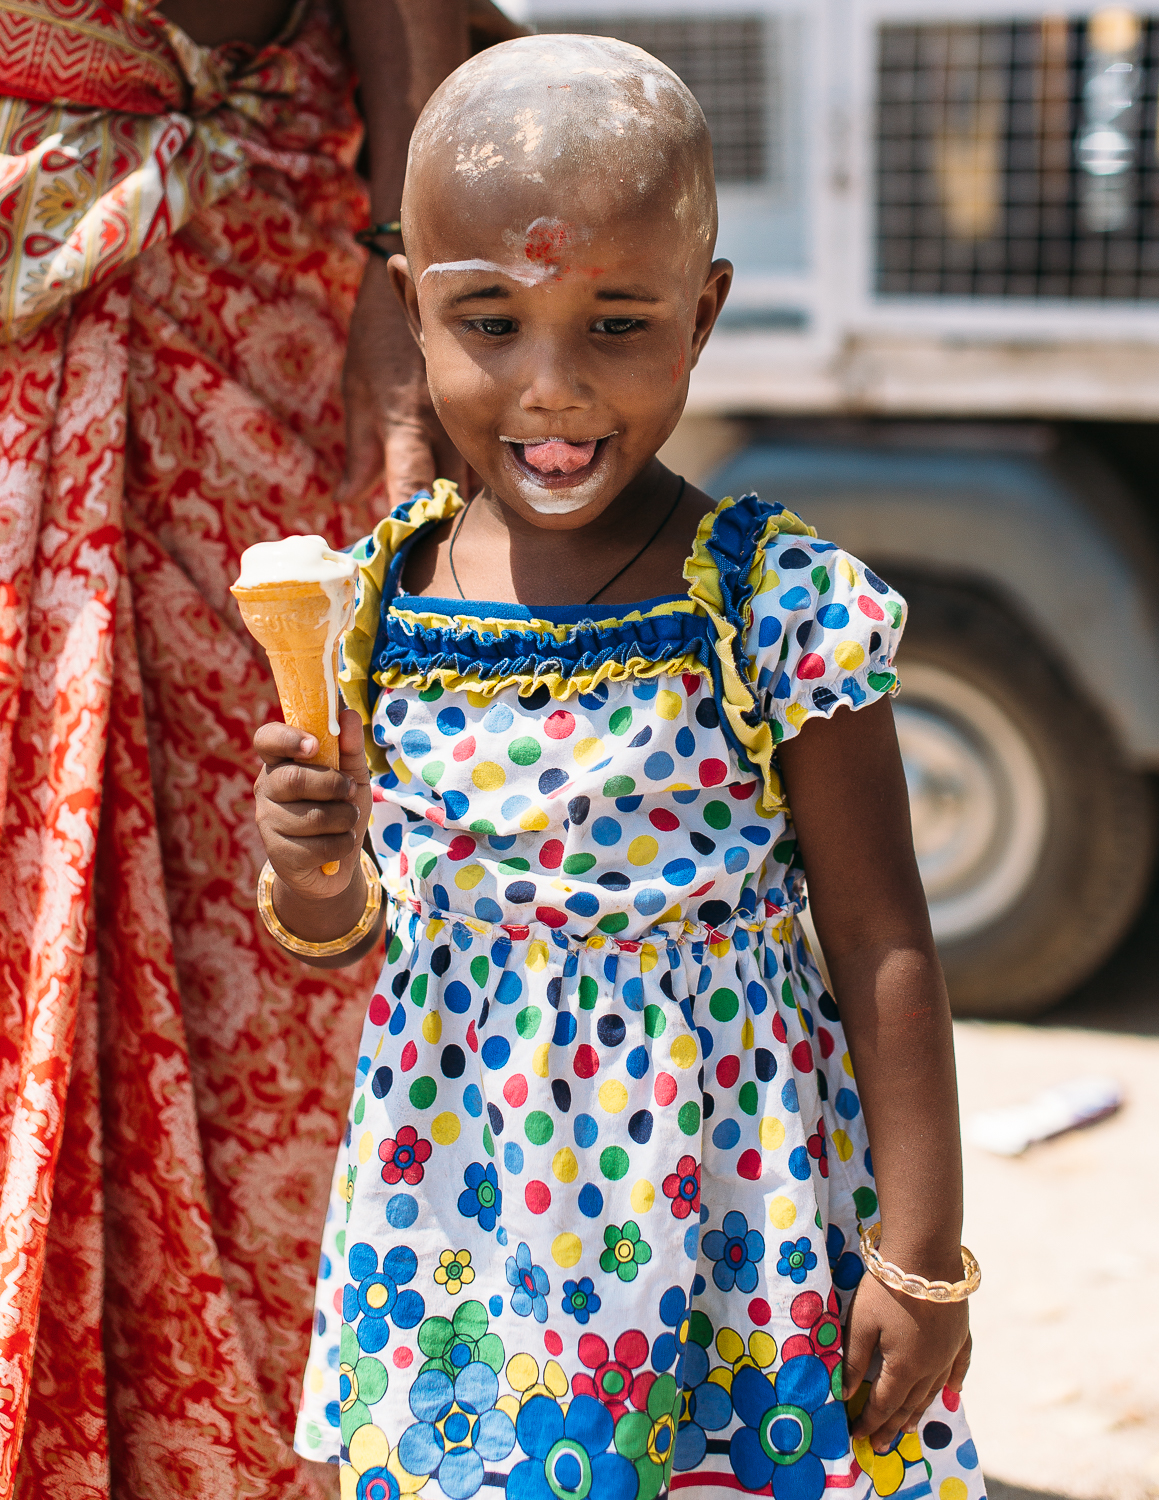 A young girl visits the food festival in Vettuvanam, India on March 11, 2016.